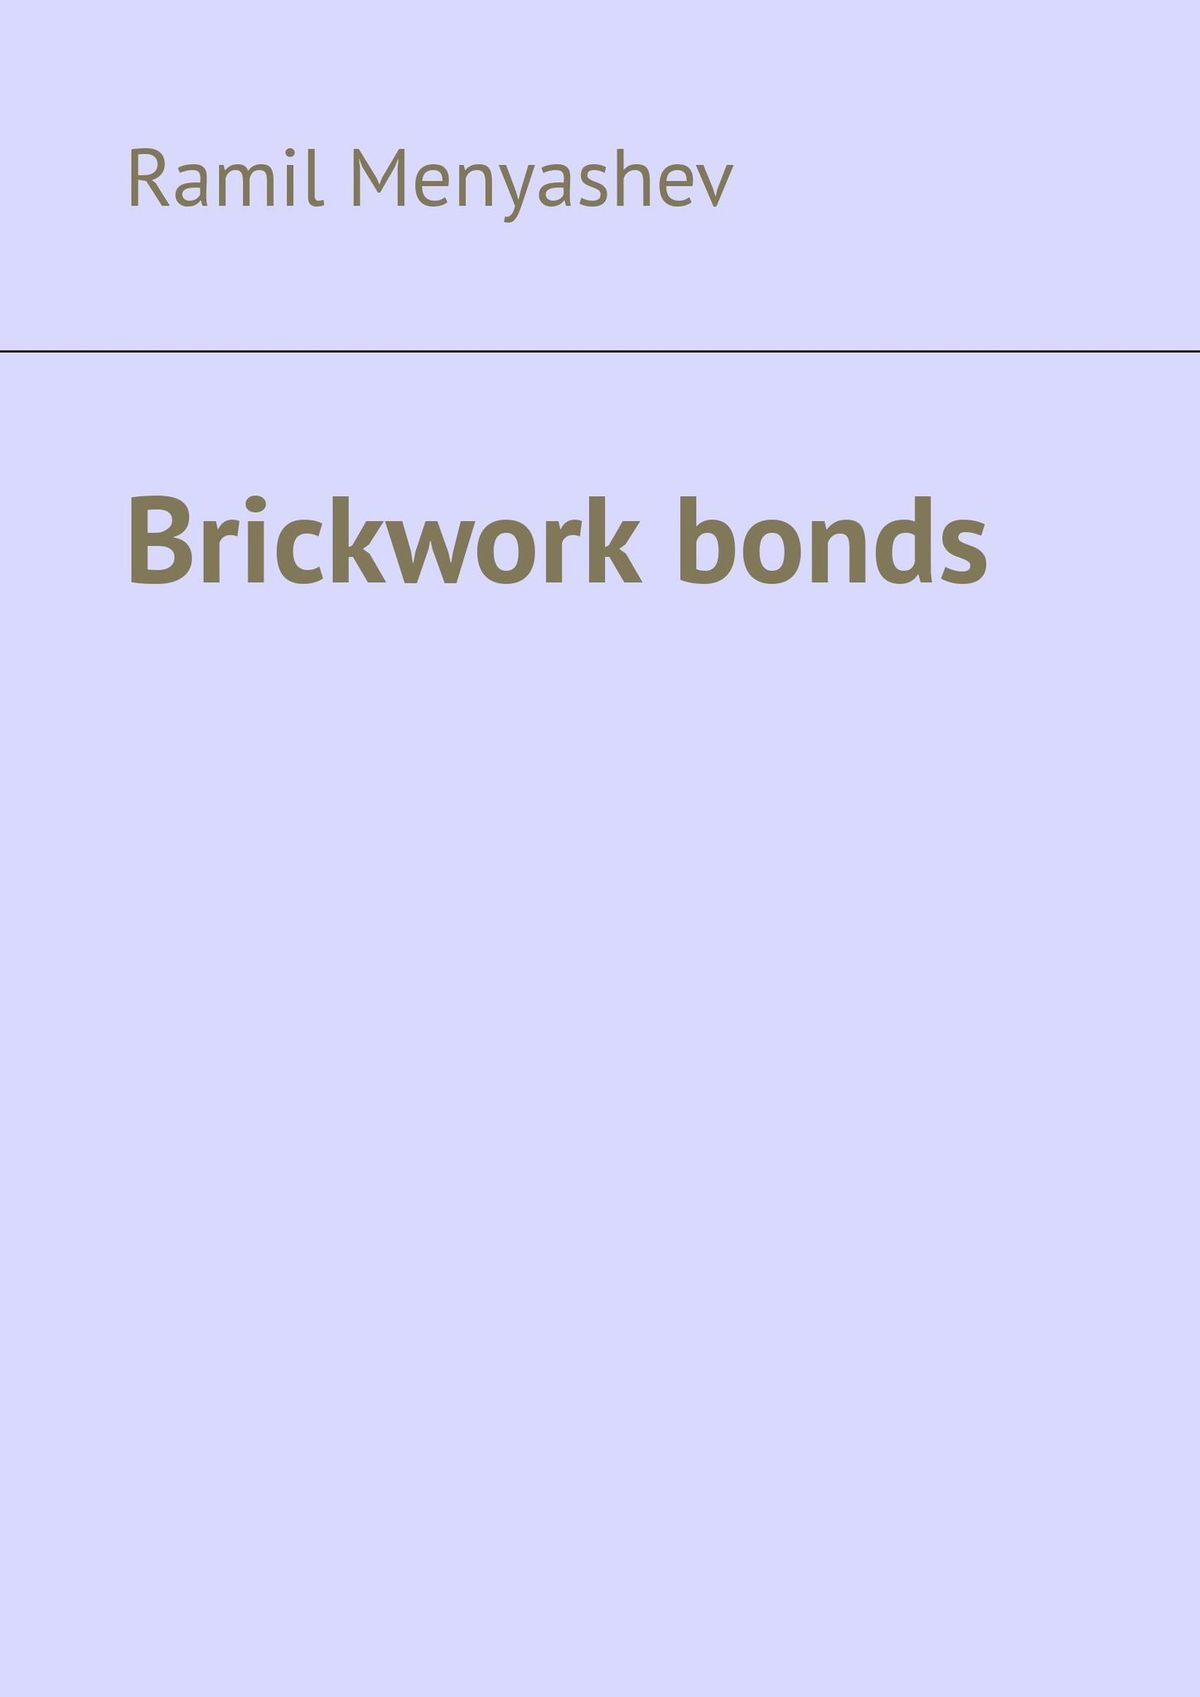 Ramil Menyashev Brickwork bonds accidental bond